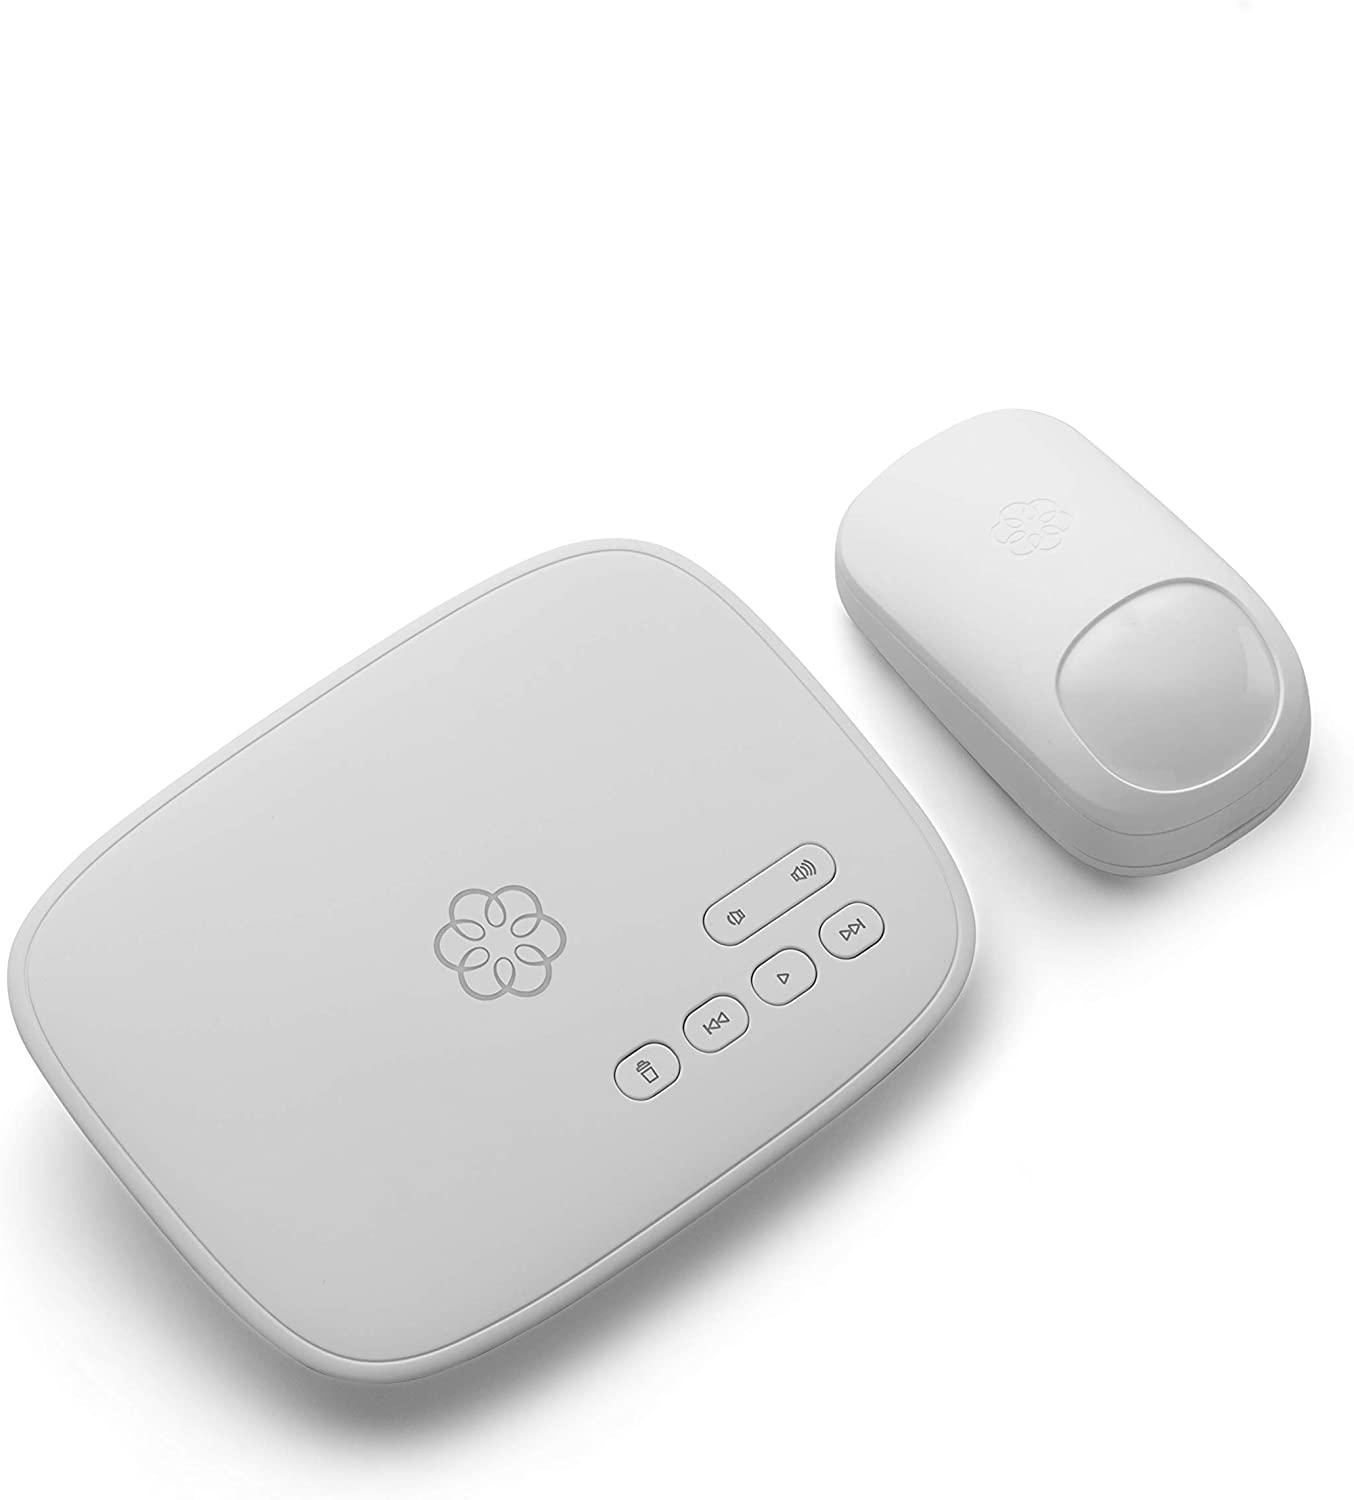 Oome Free Home Phone Service with Motion Sensor